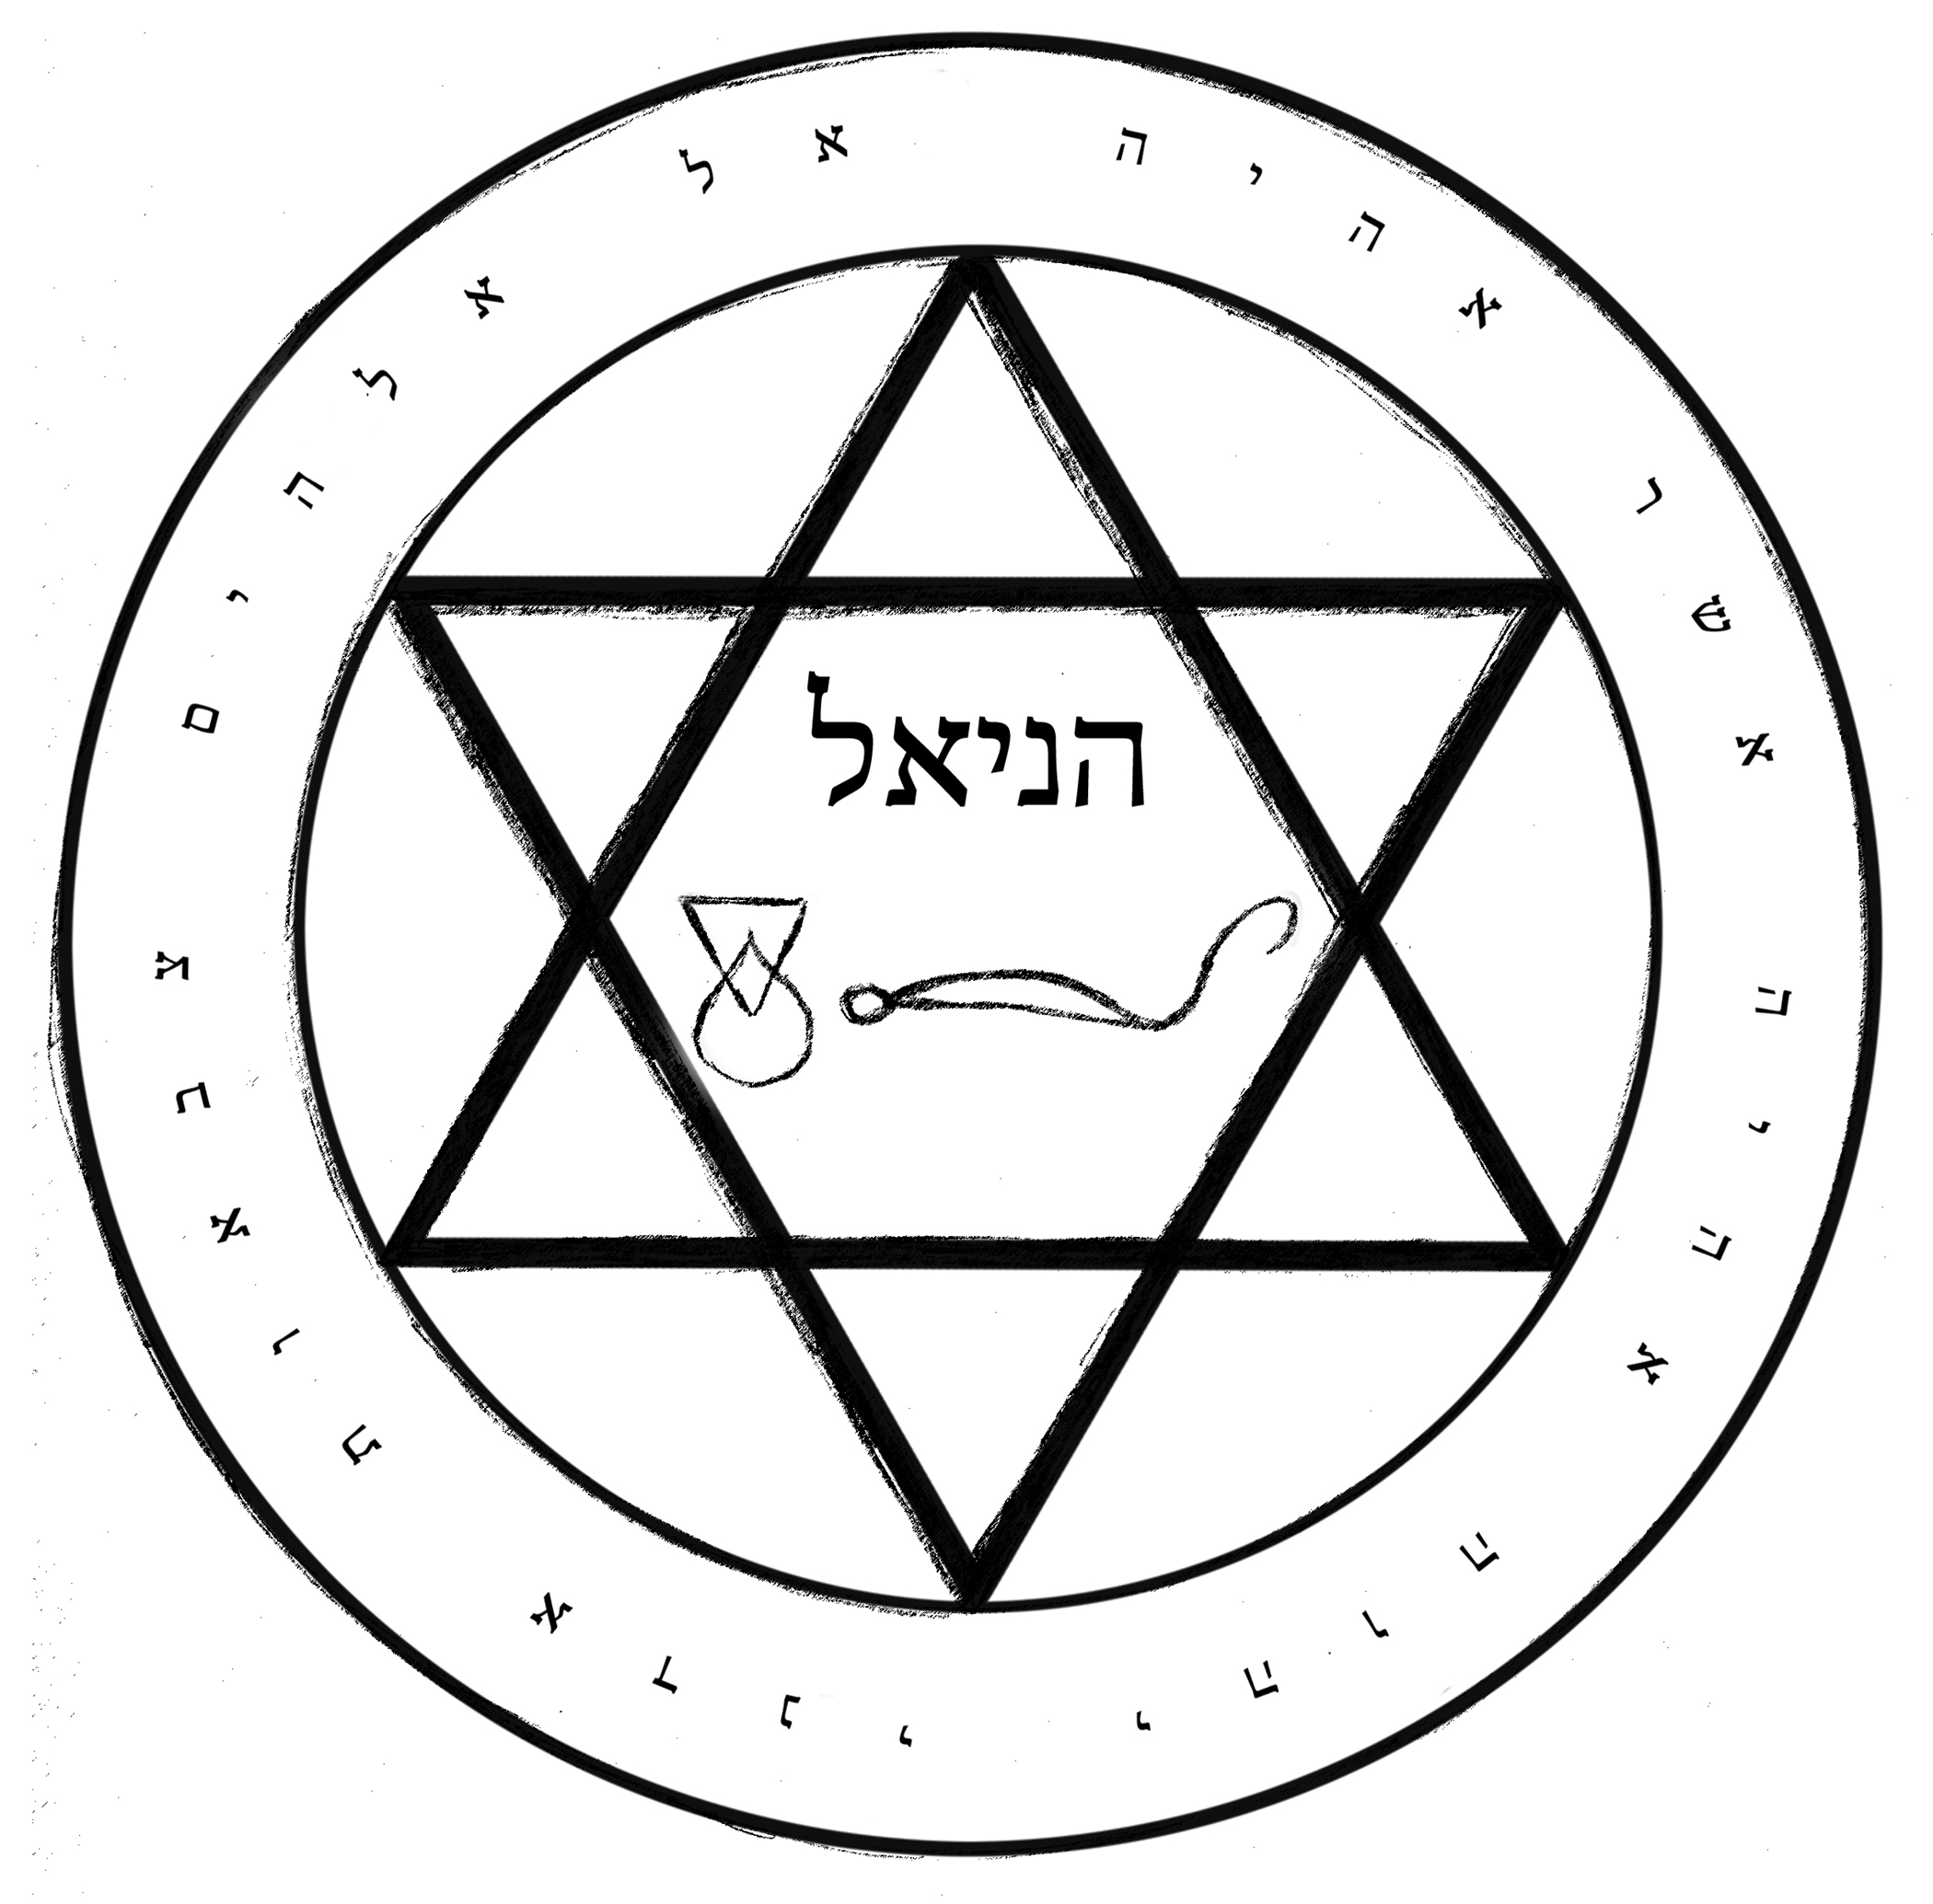 Images – The Gallery of Magick